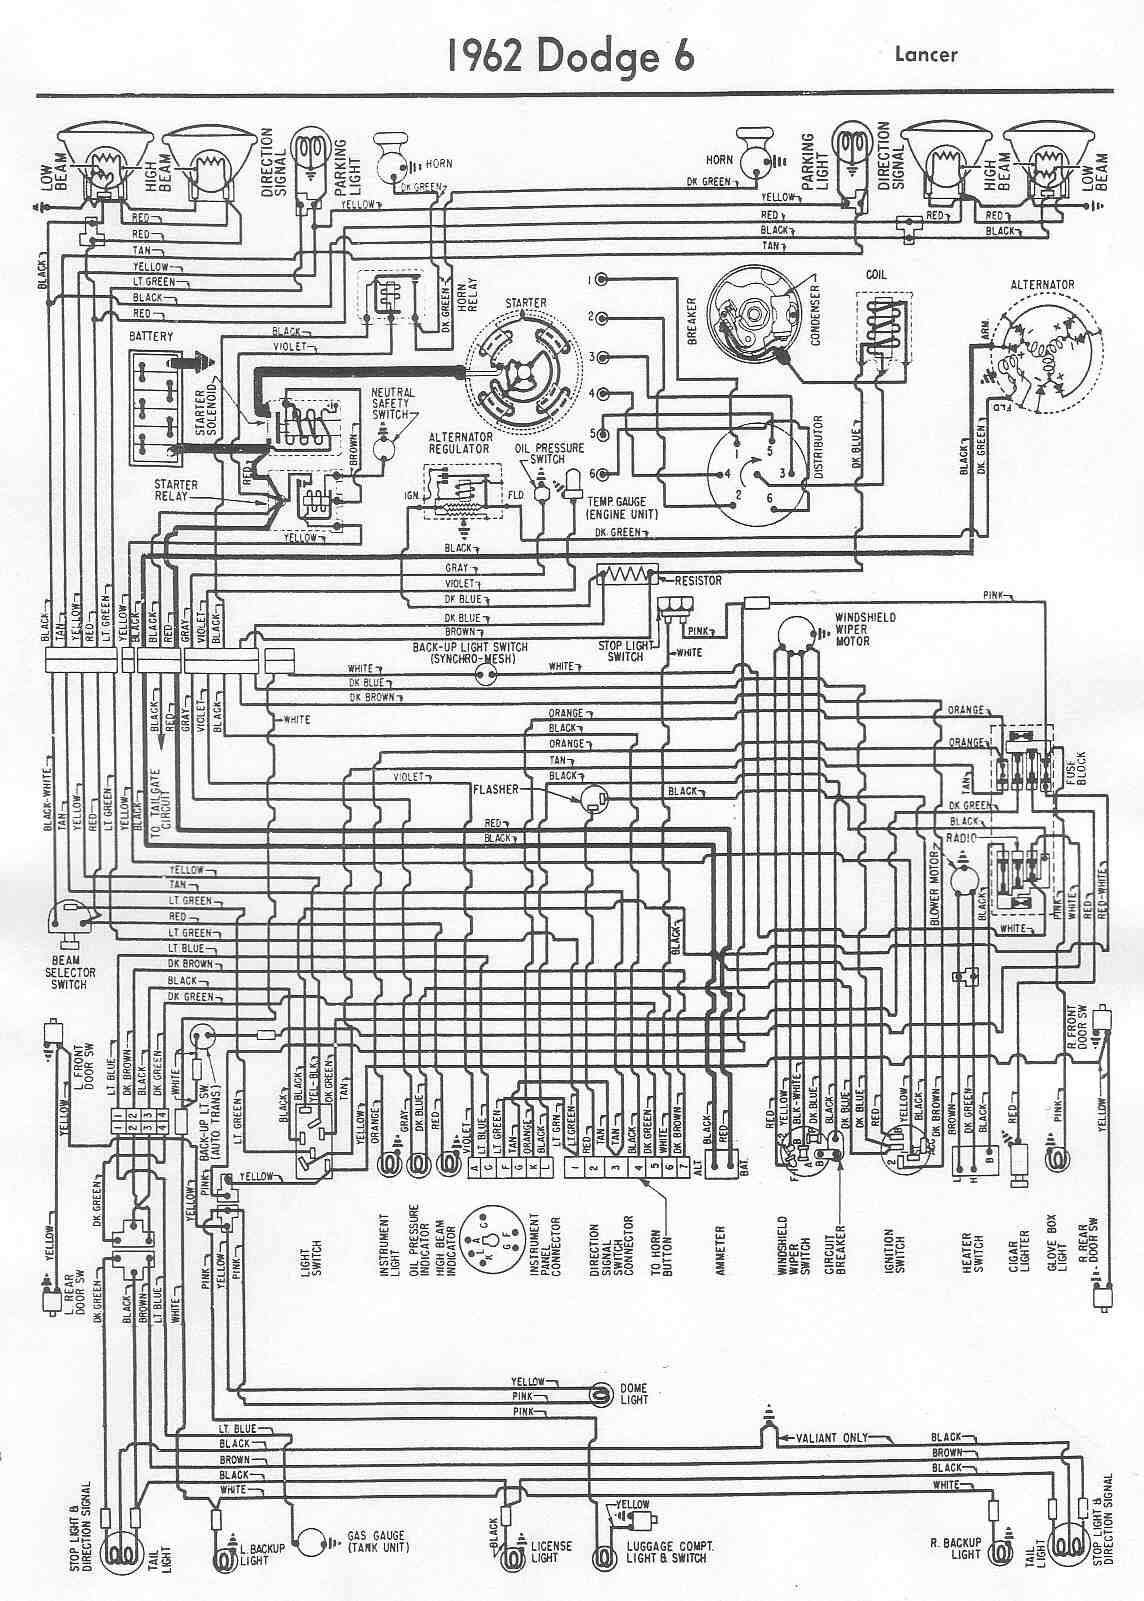 Dodge Car Manuals Wiring Diagrams Pdf Fault Codes Ford E 150 Diagram Download